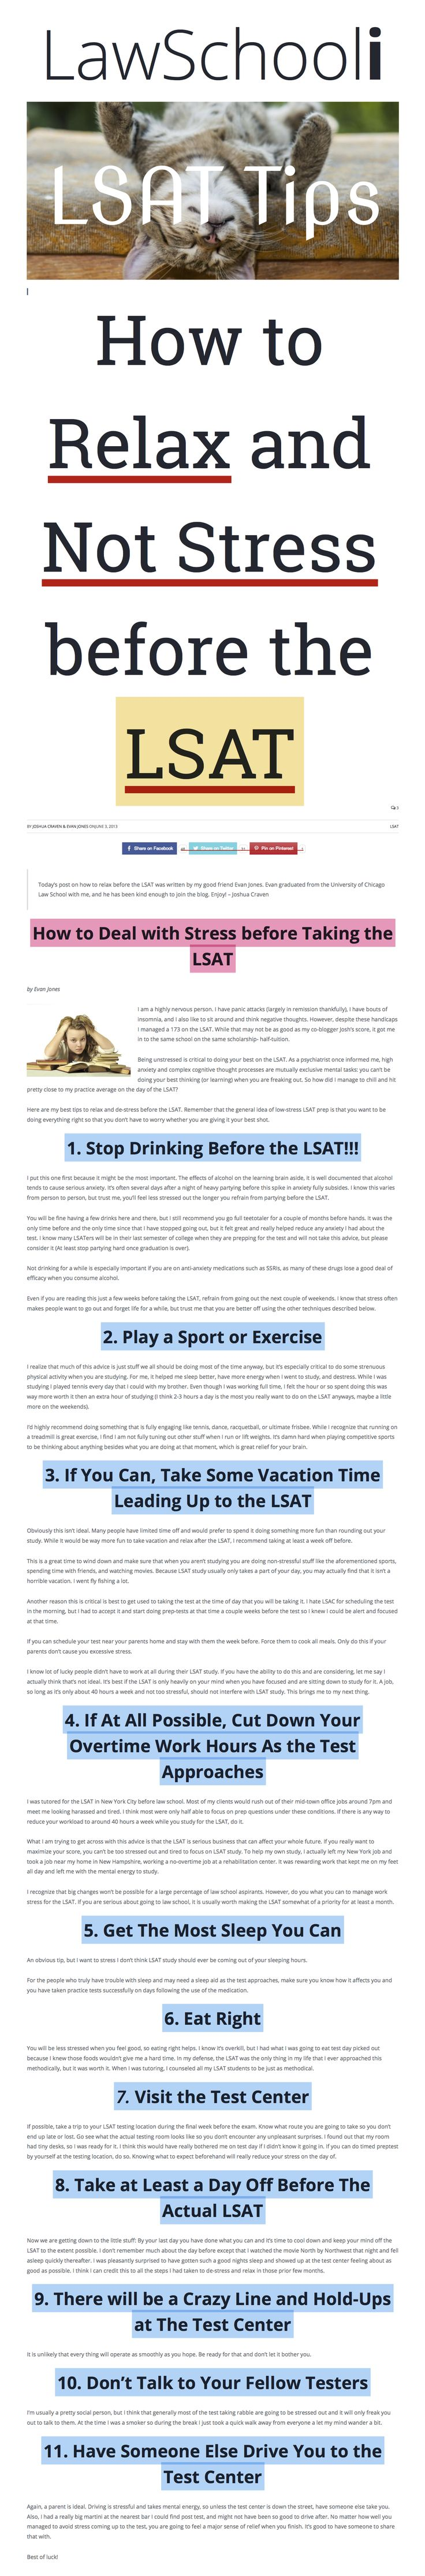 How to Relax & Not Stress Before the LSAT: http://lawschooli.com/how-to-relax-and-not-stress-before-the-lsat/